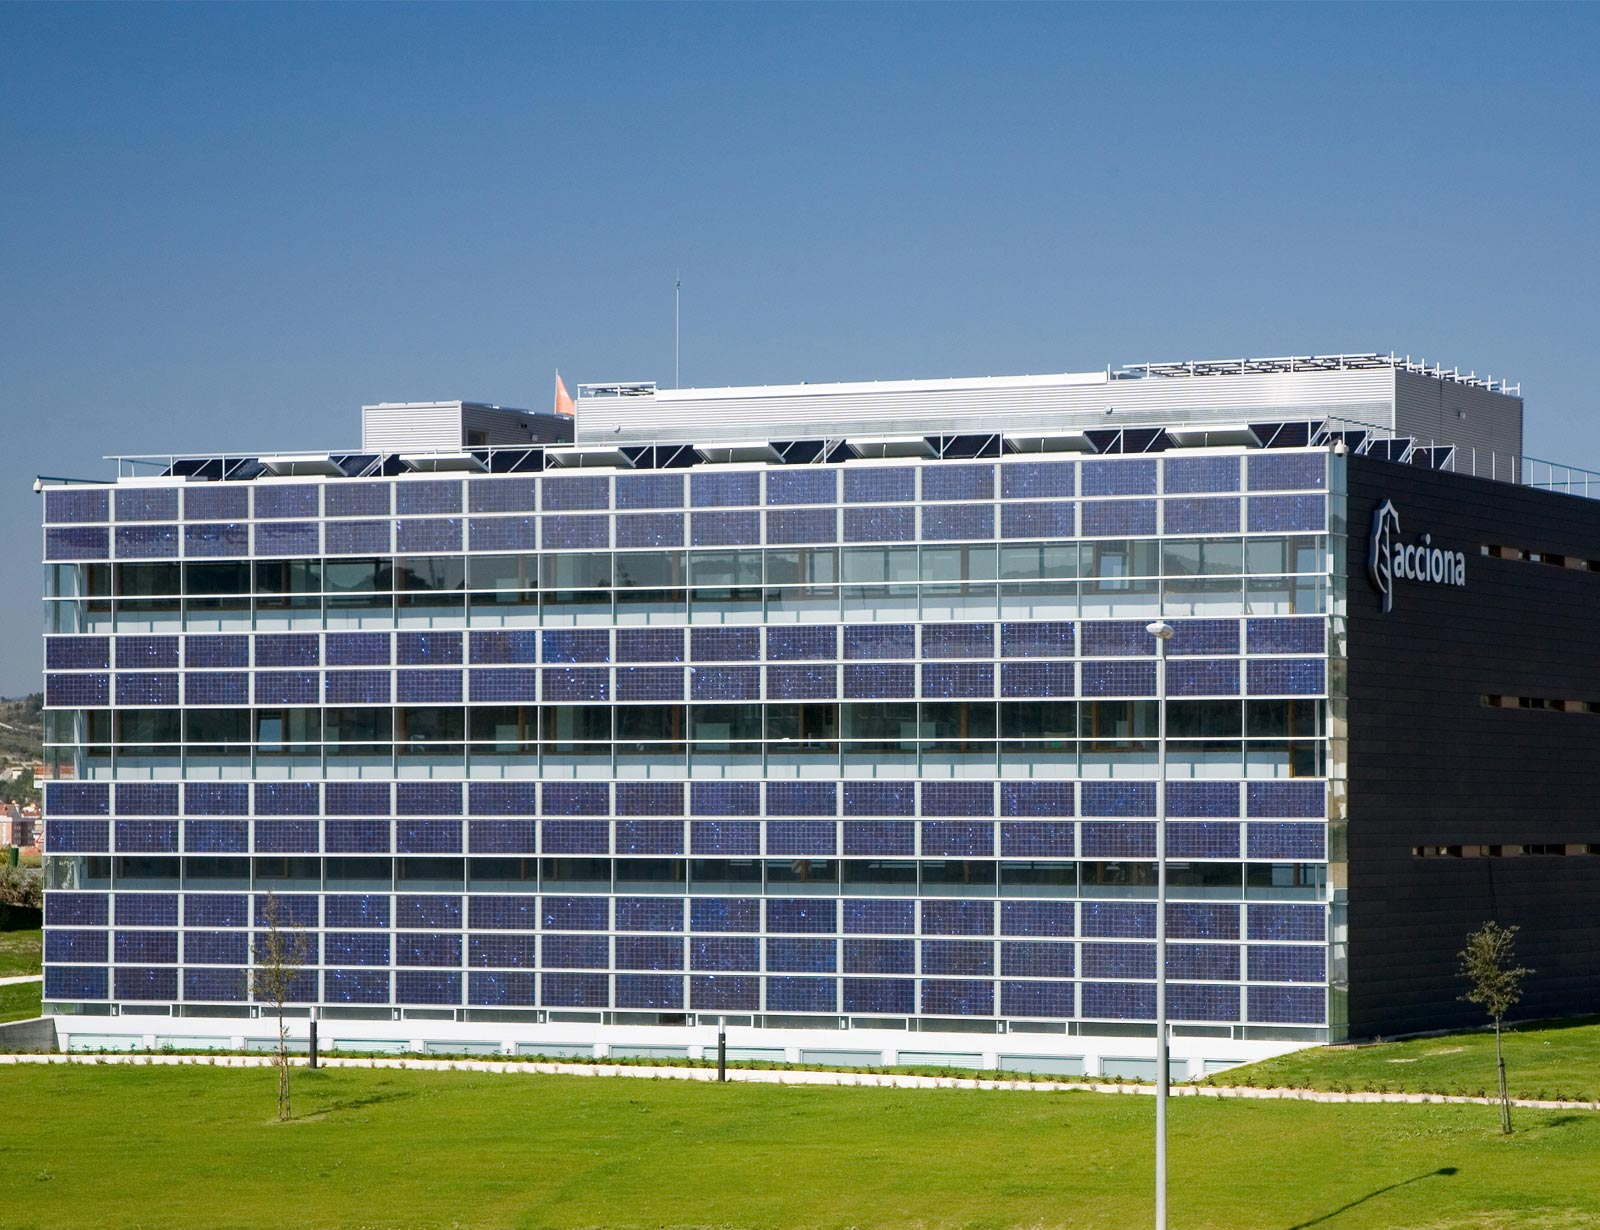 ZERO EMISSION BUILDING. ACCIONA SOLAR HEADQUARTERS, PAMPLONA